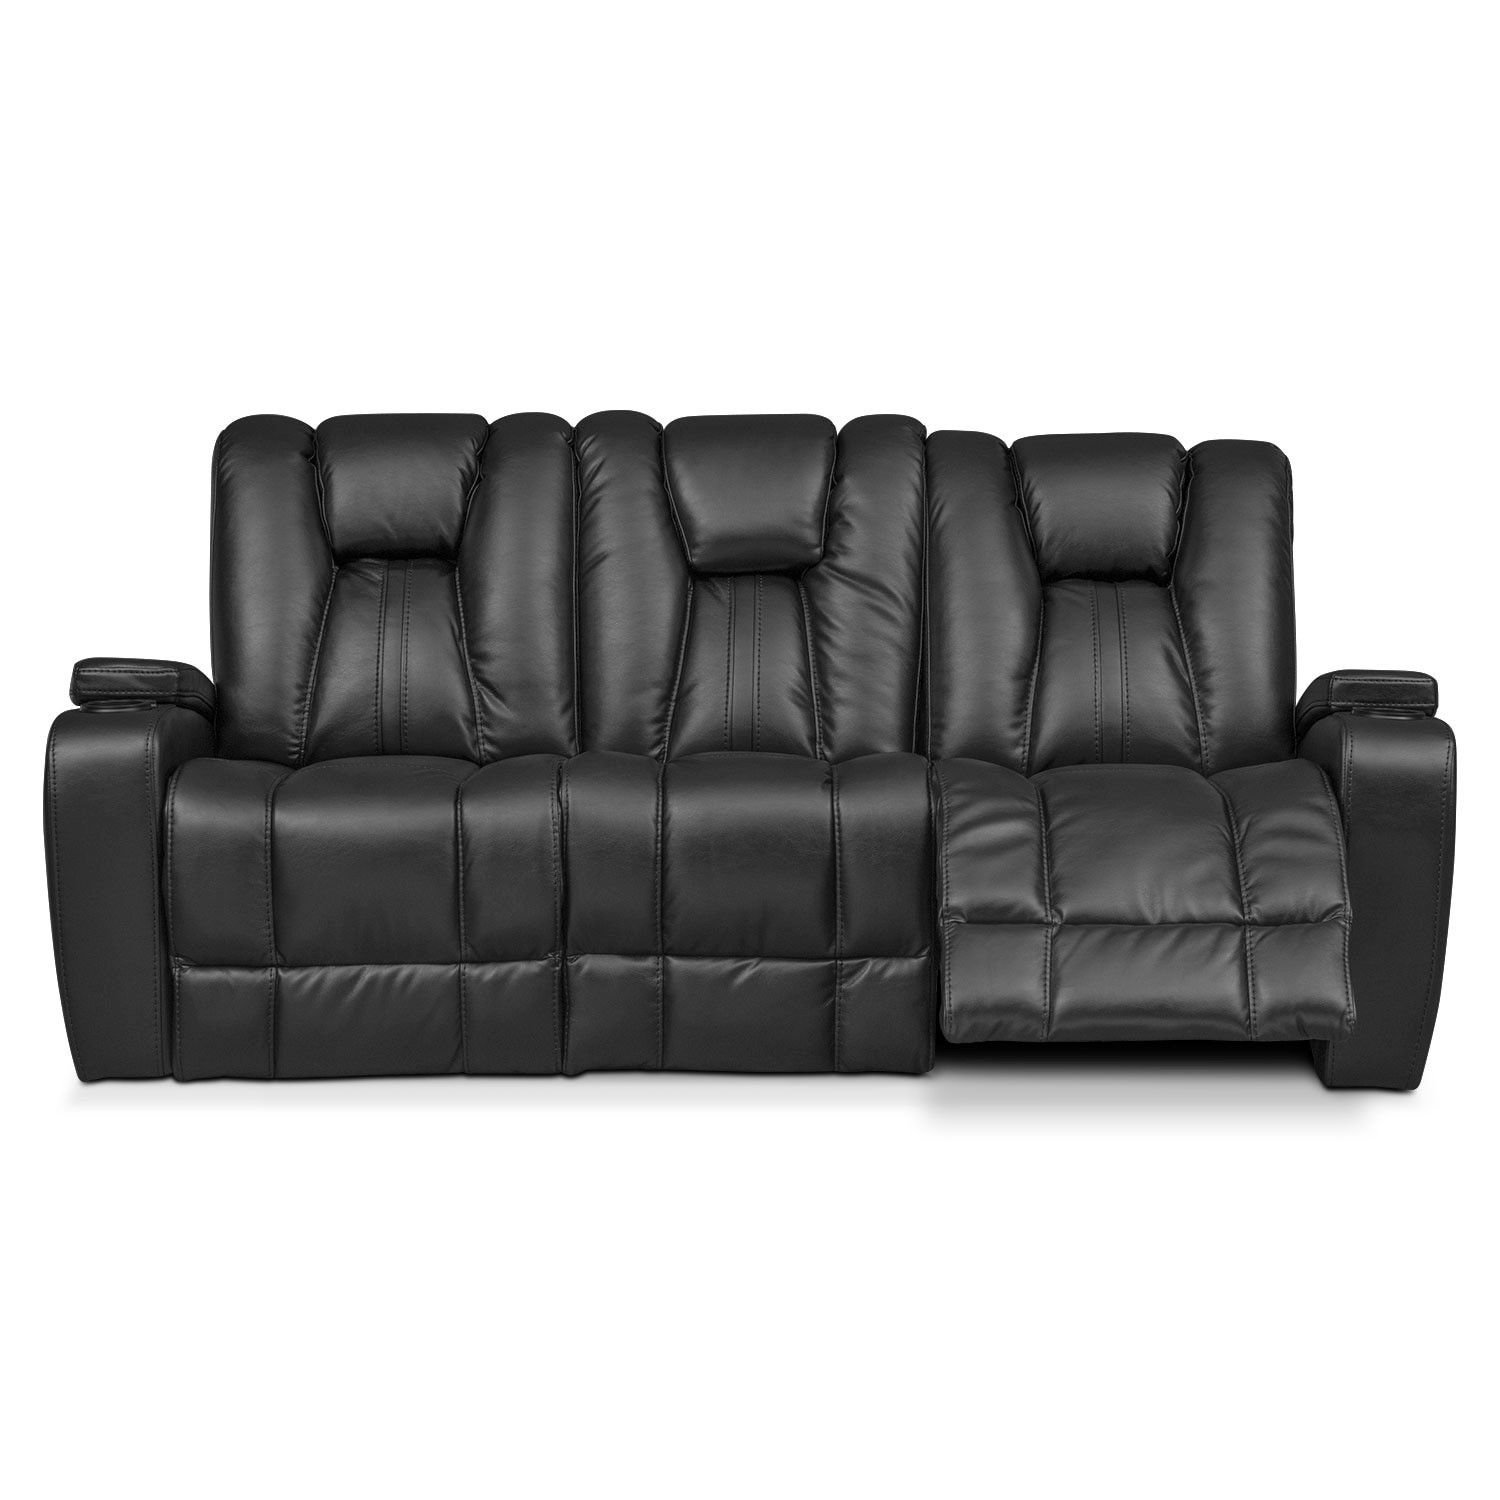 Power Recliner sofa Sensational Pulsar Dual Power Reclining sofa Black Inspiration